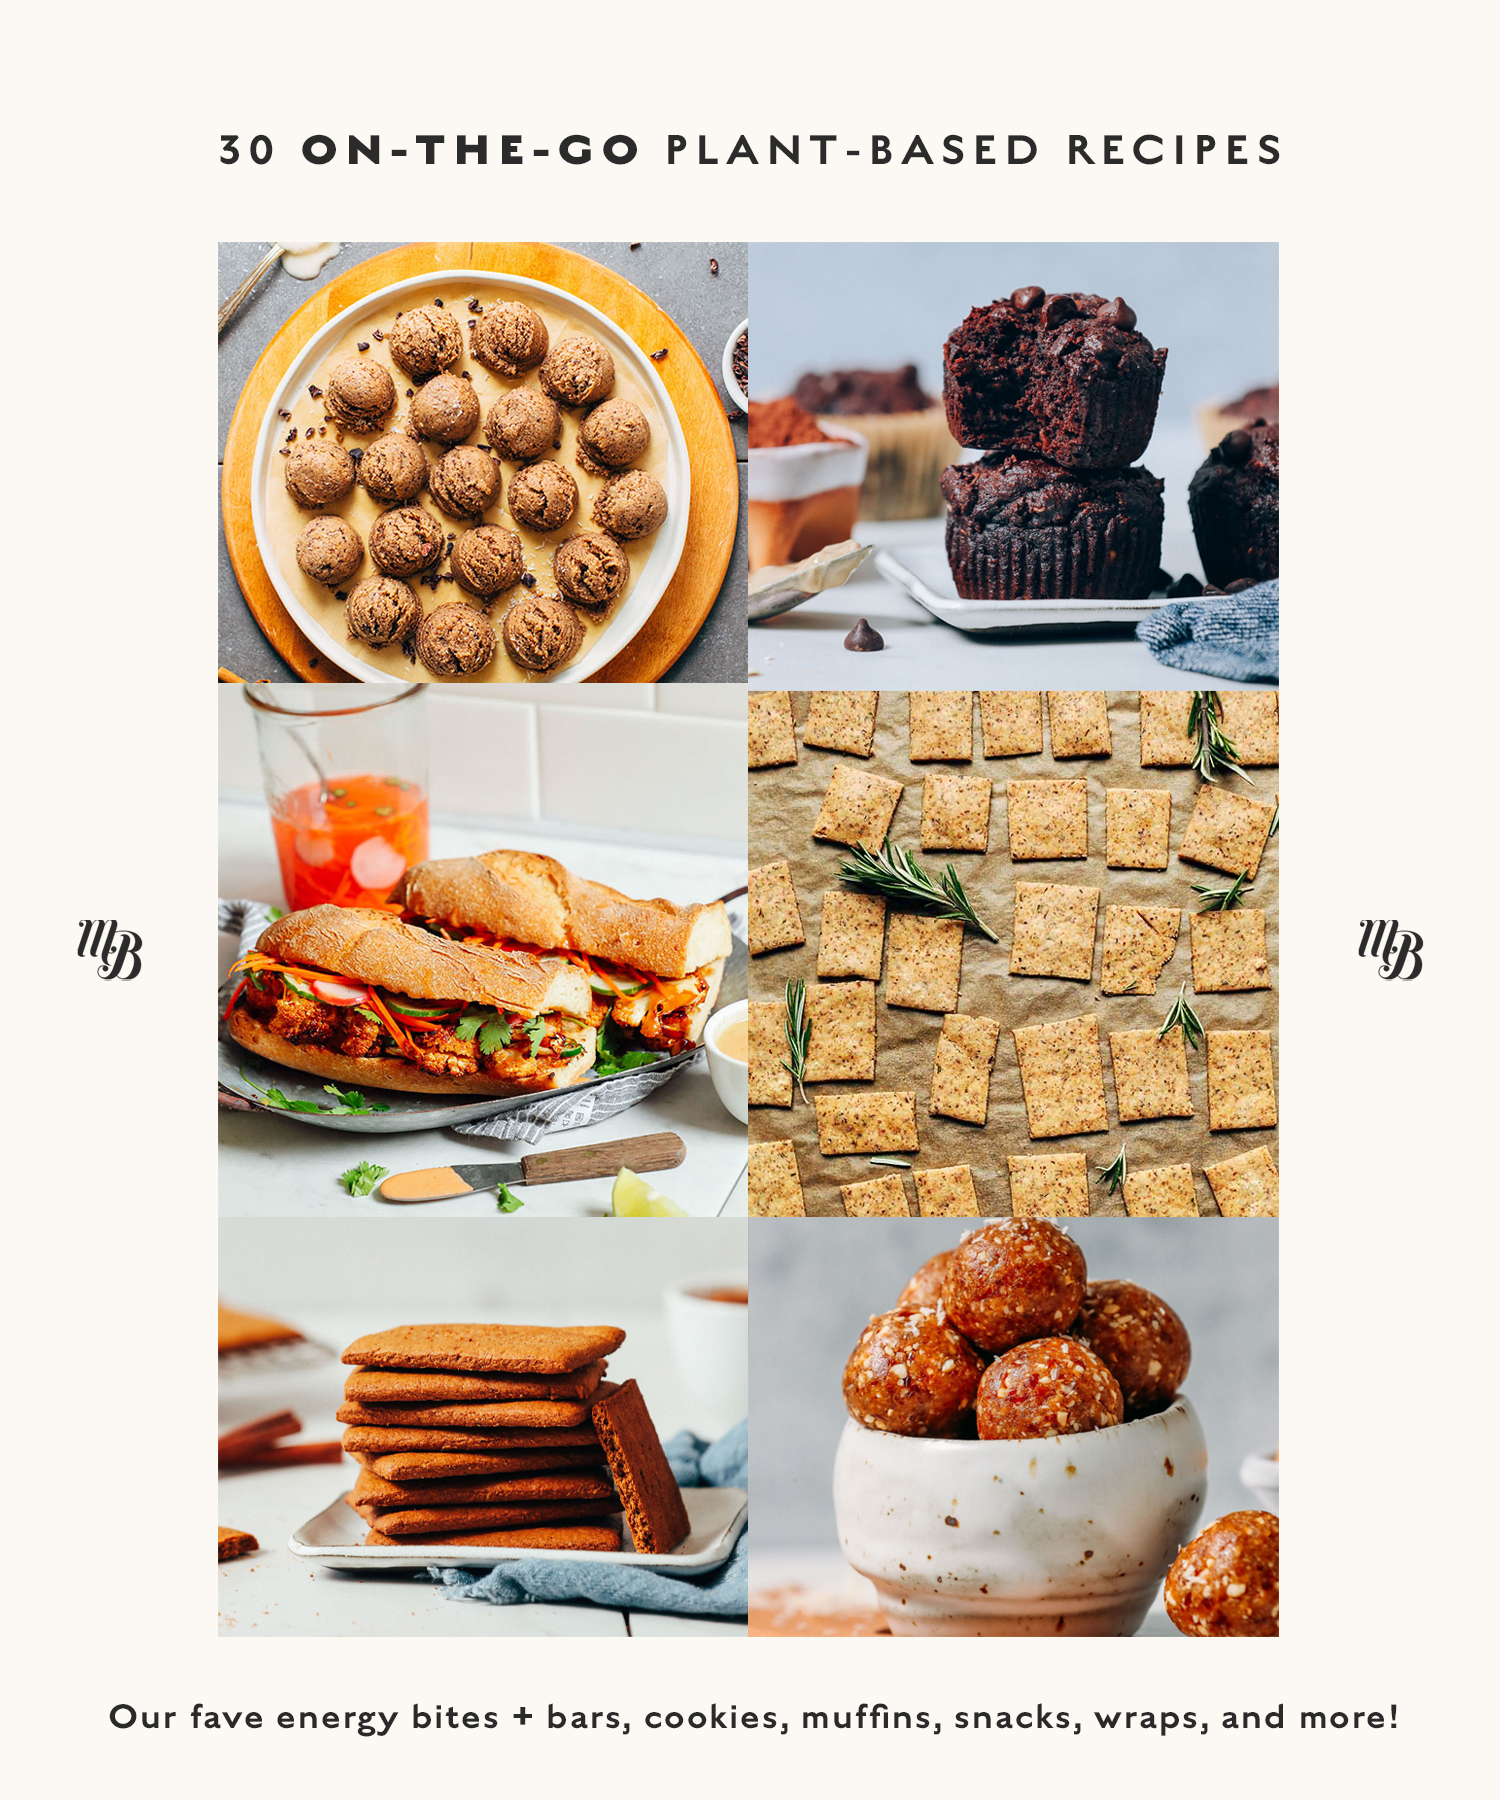 Snack bites, muffins, sandwiches and crackers for our round-up of on-the-go plant-based recipes